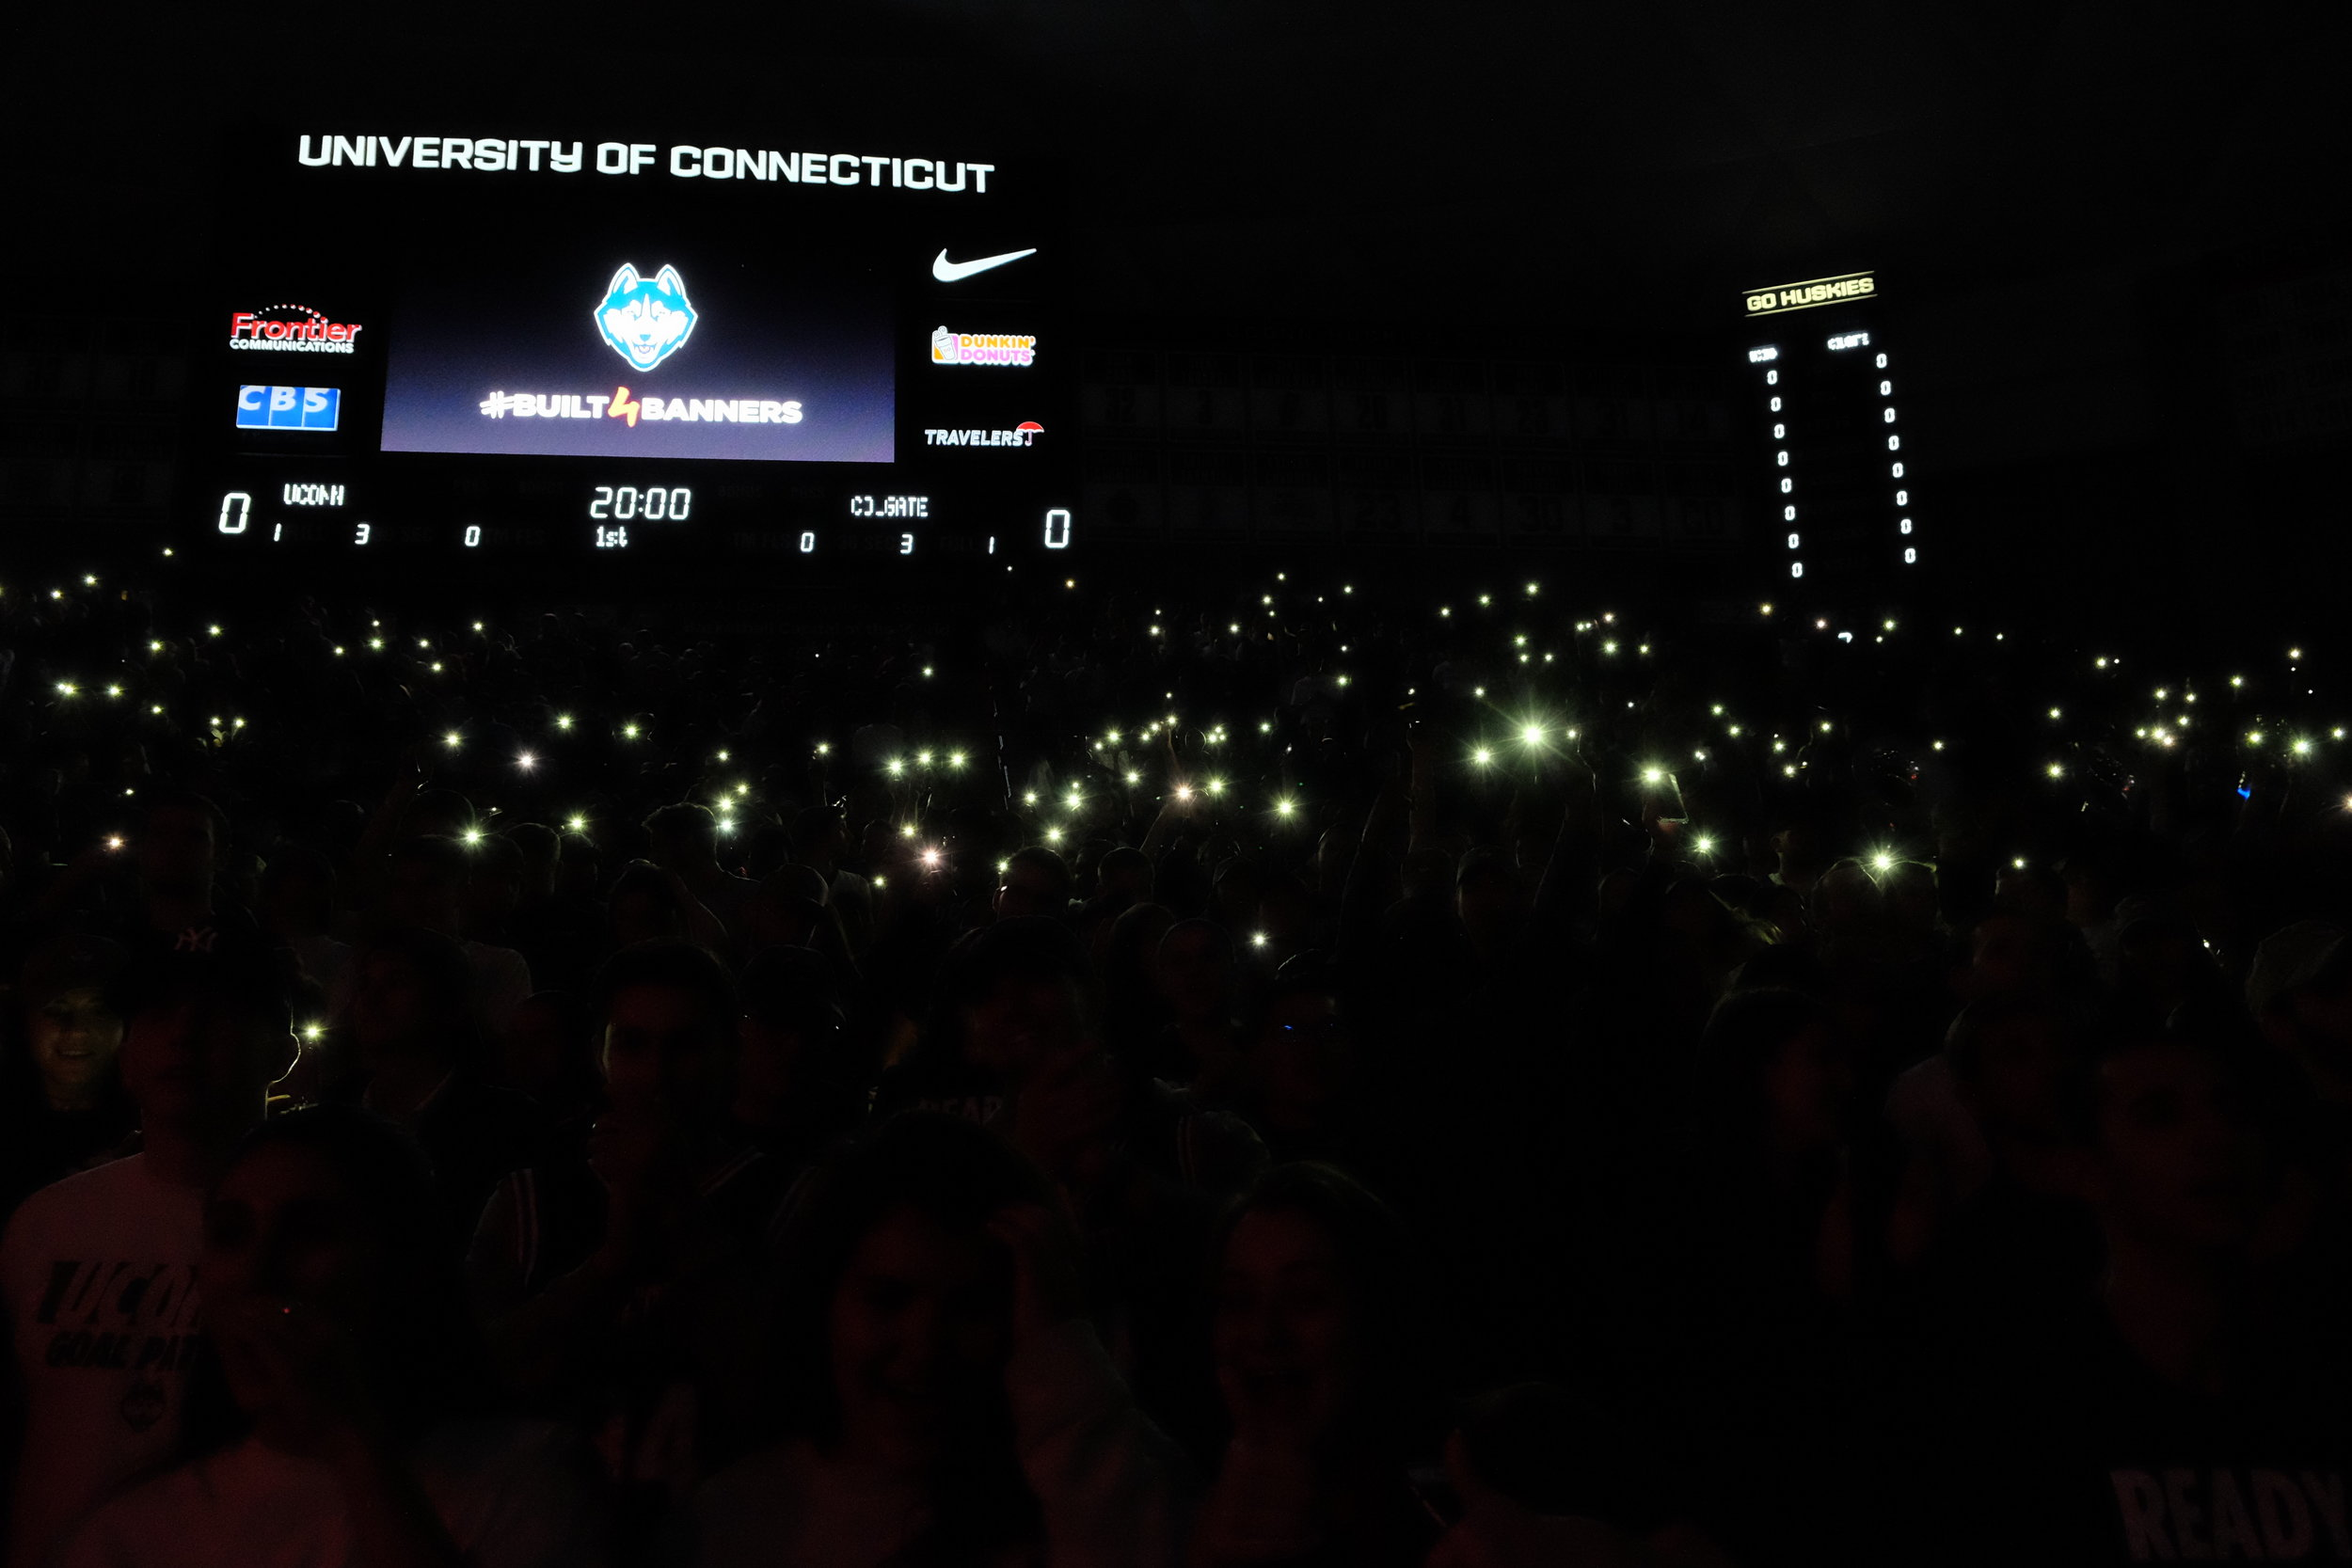 Tradition is huge, and with every game comes a flurry of cell phone lights to introduce the UConn Huskies to the court.